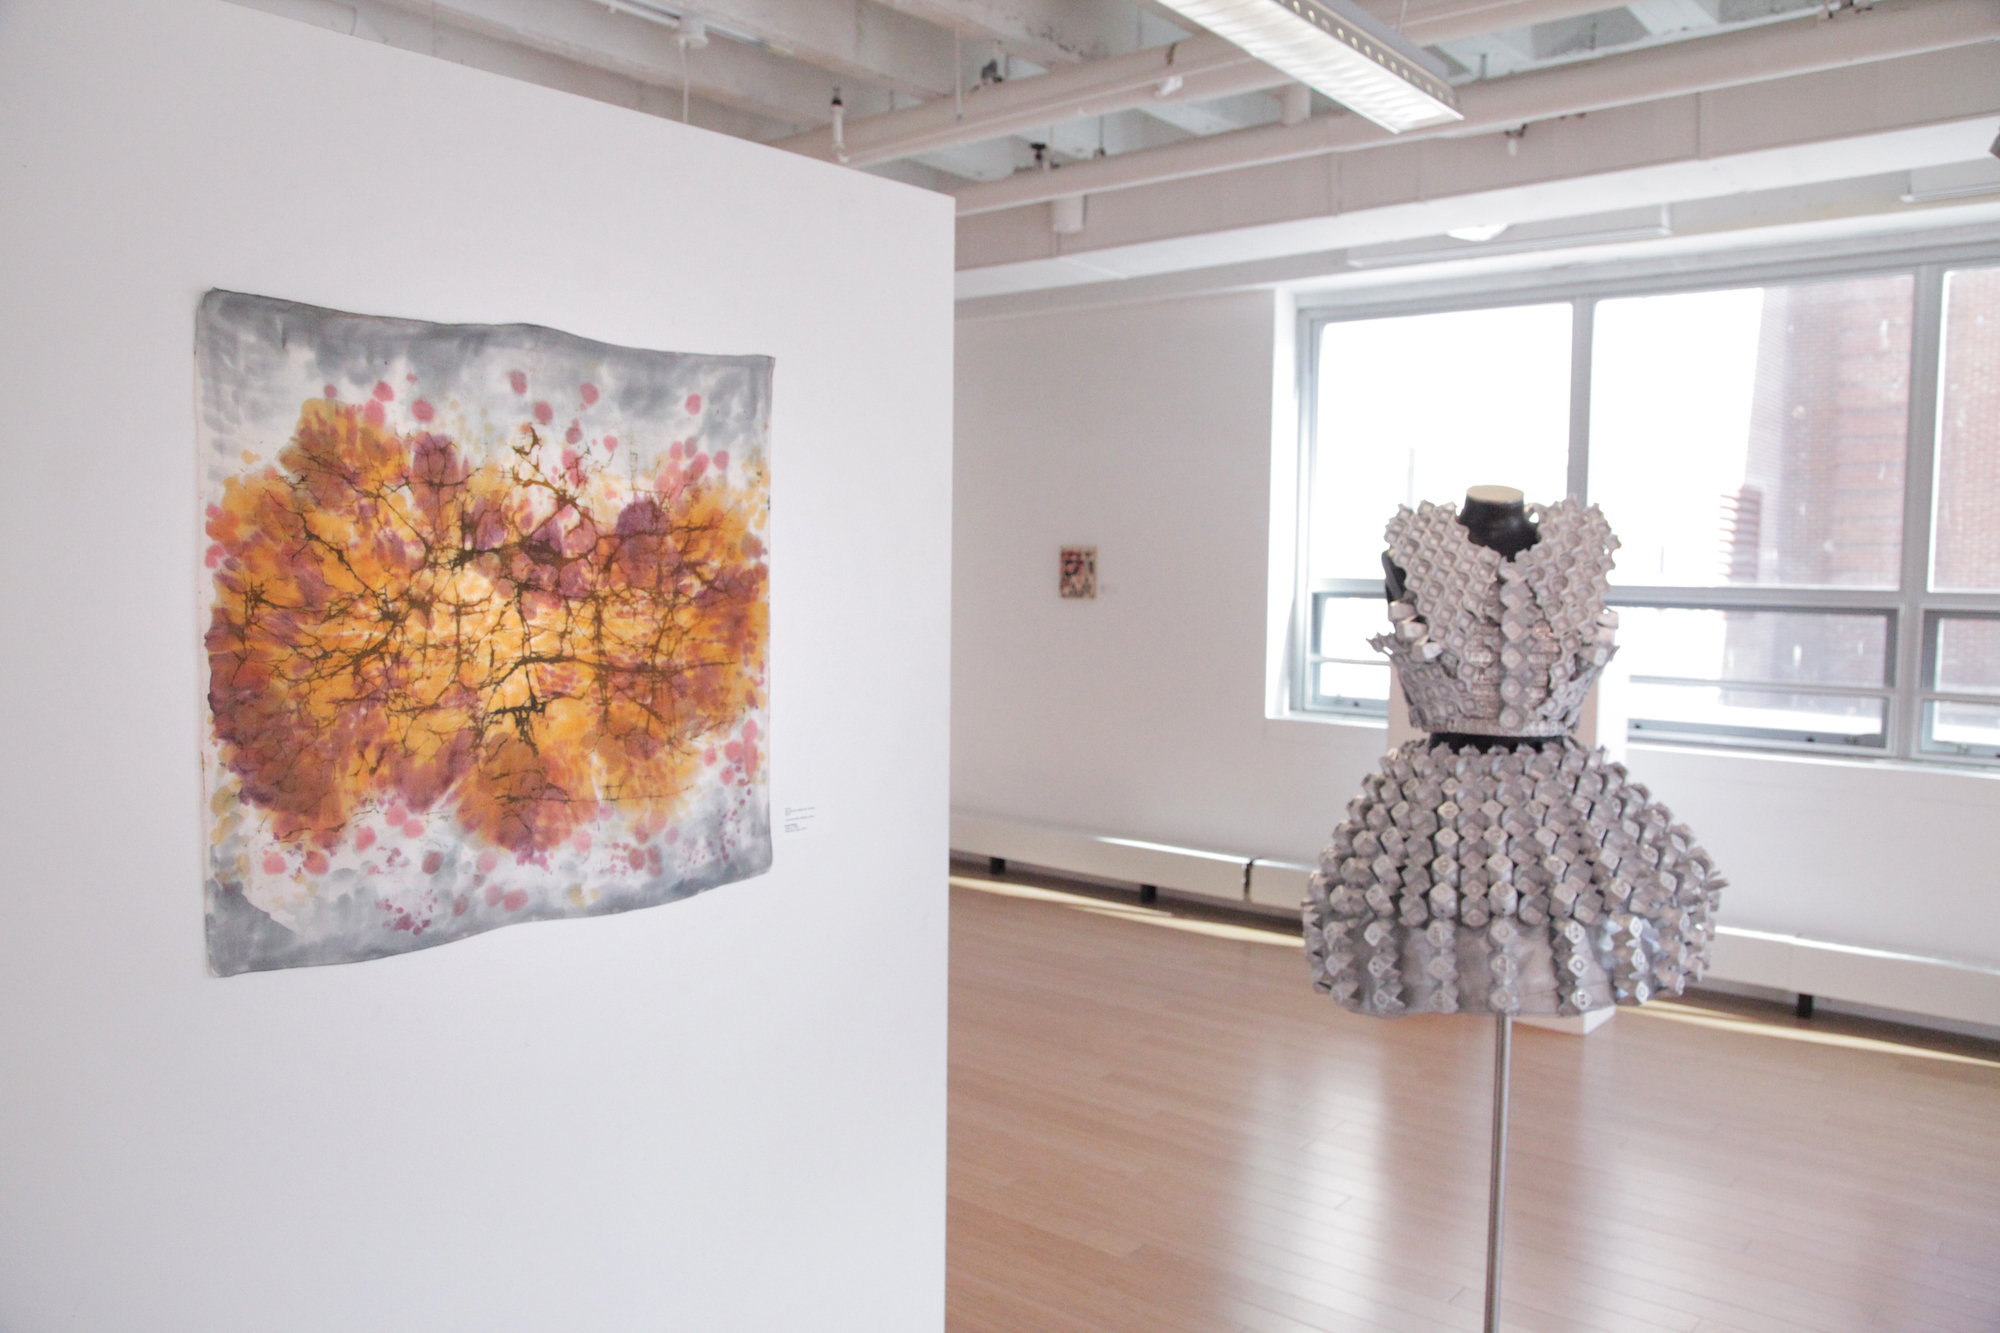 Featured Emelie Bergh work in 2D fibers and fashion industrial design. / Geena Matuson's (@geenamatuson) TransFIREmation Gallery Show & Installation in the MassArt Student Life Gallery in Boston, MA, US.